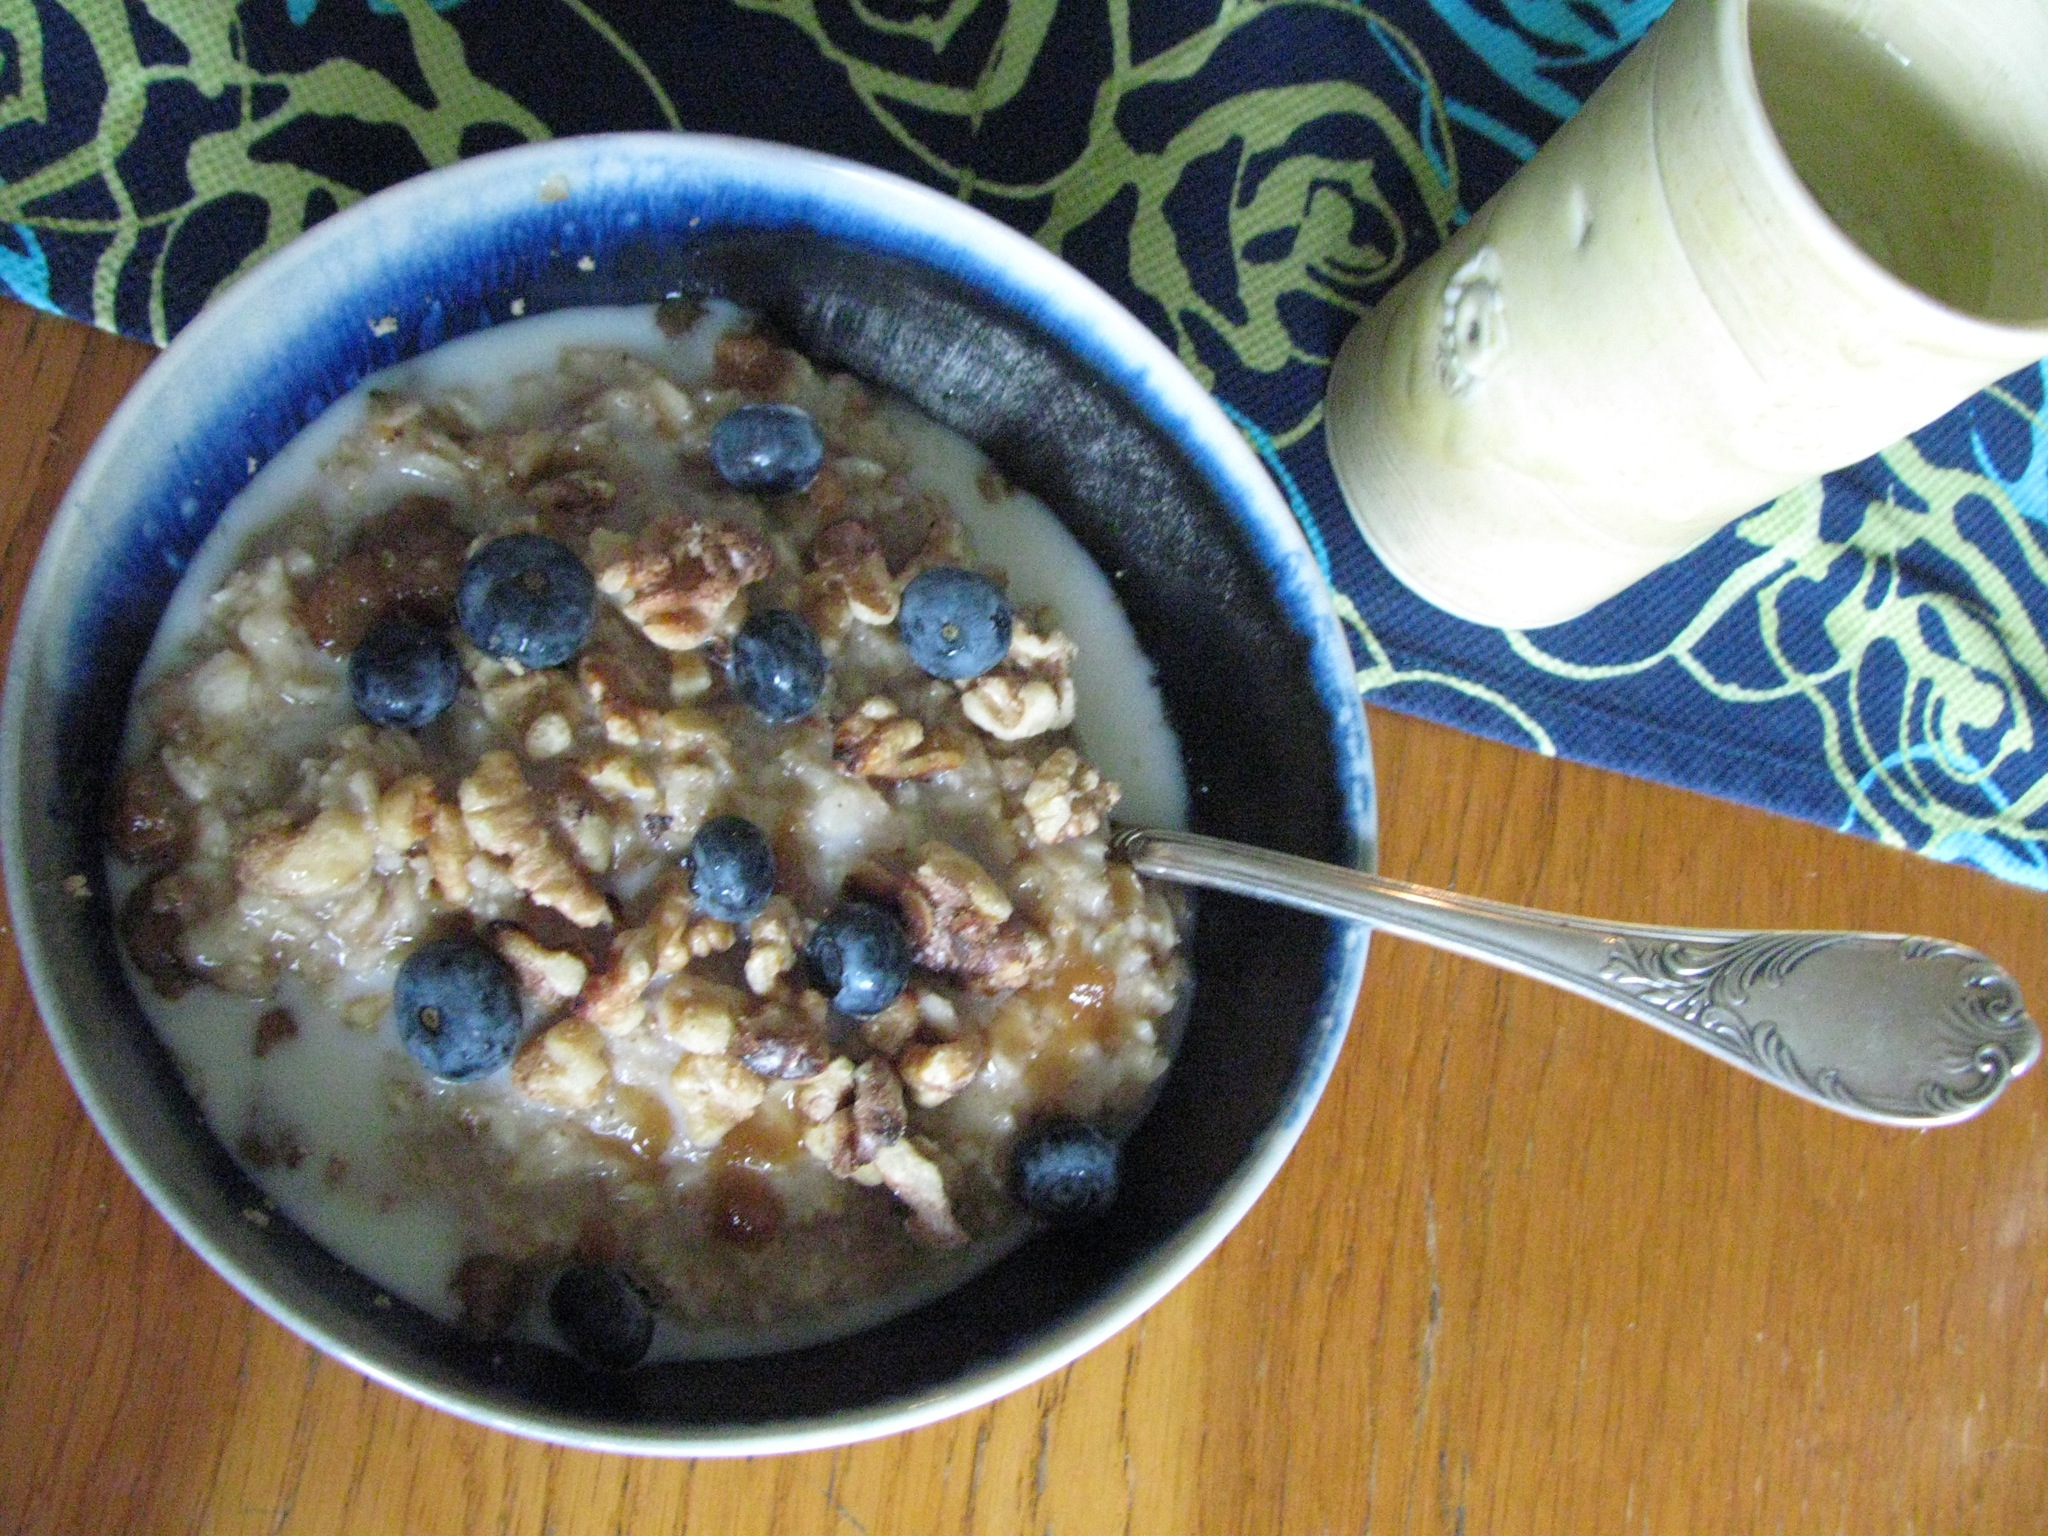 File:oatmeal blueberries and almond milk.jpg wikimedia commons